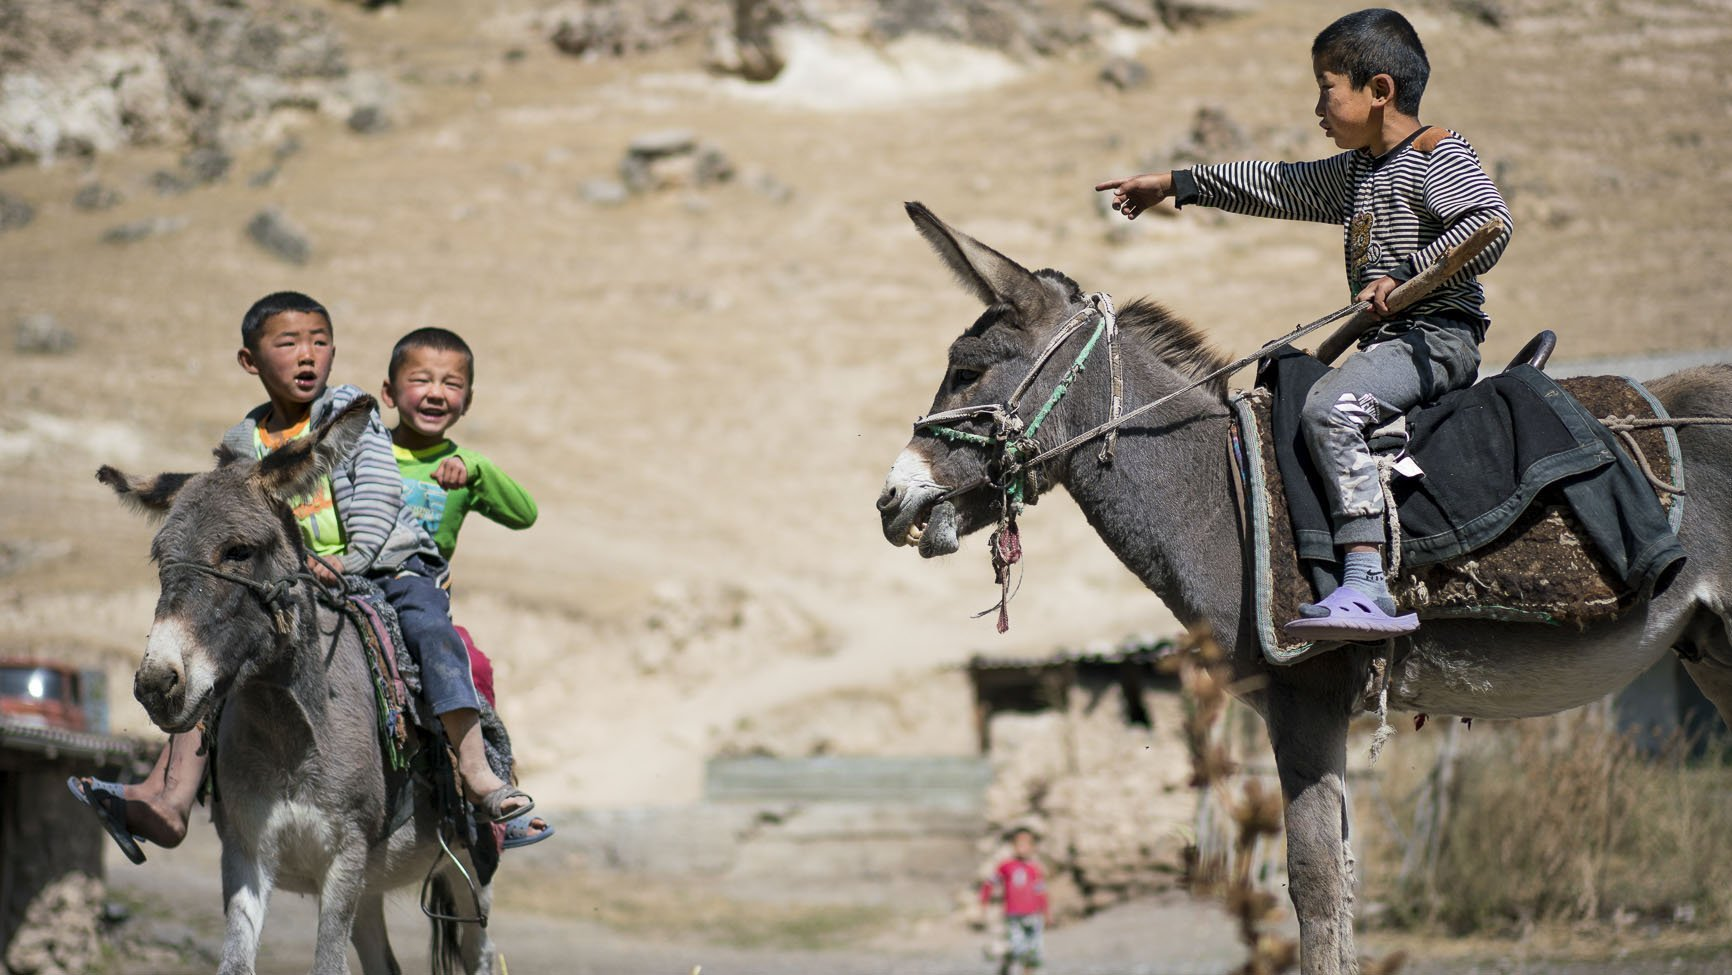 Local children riding donkeys